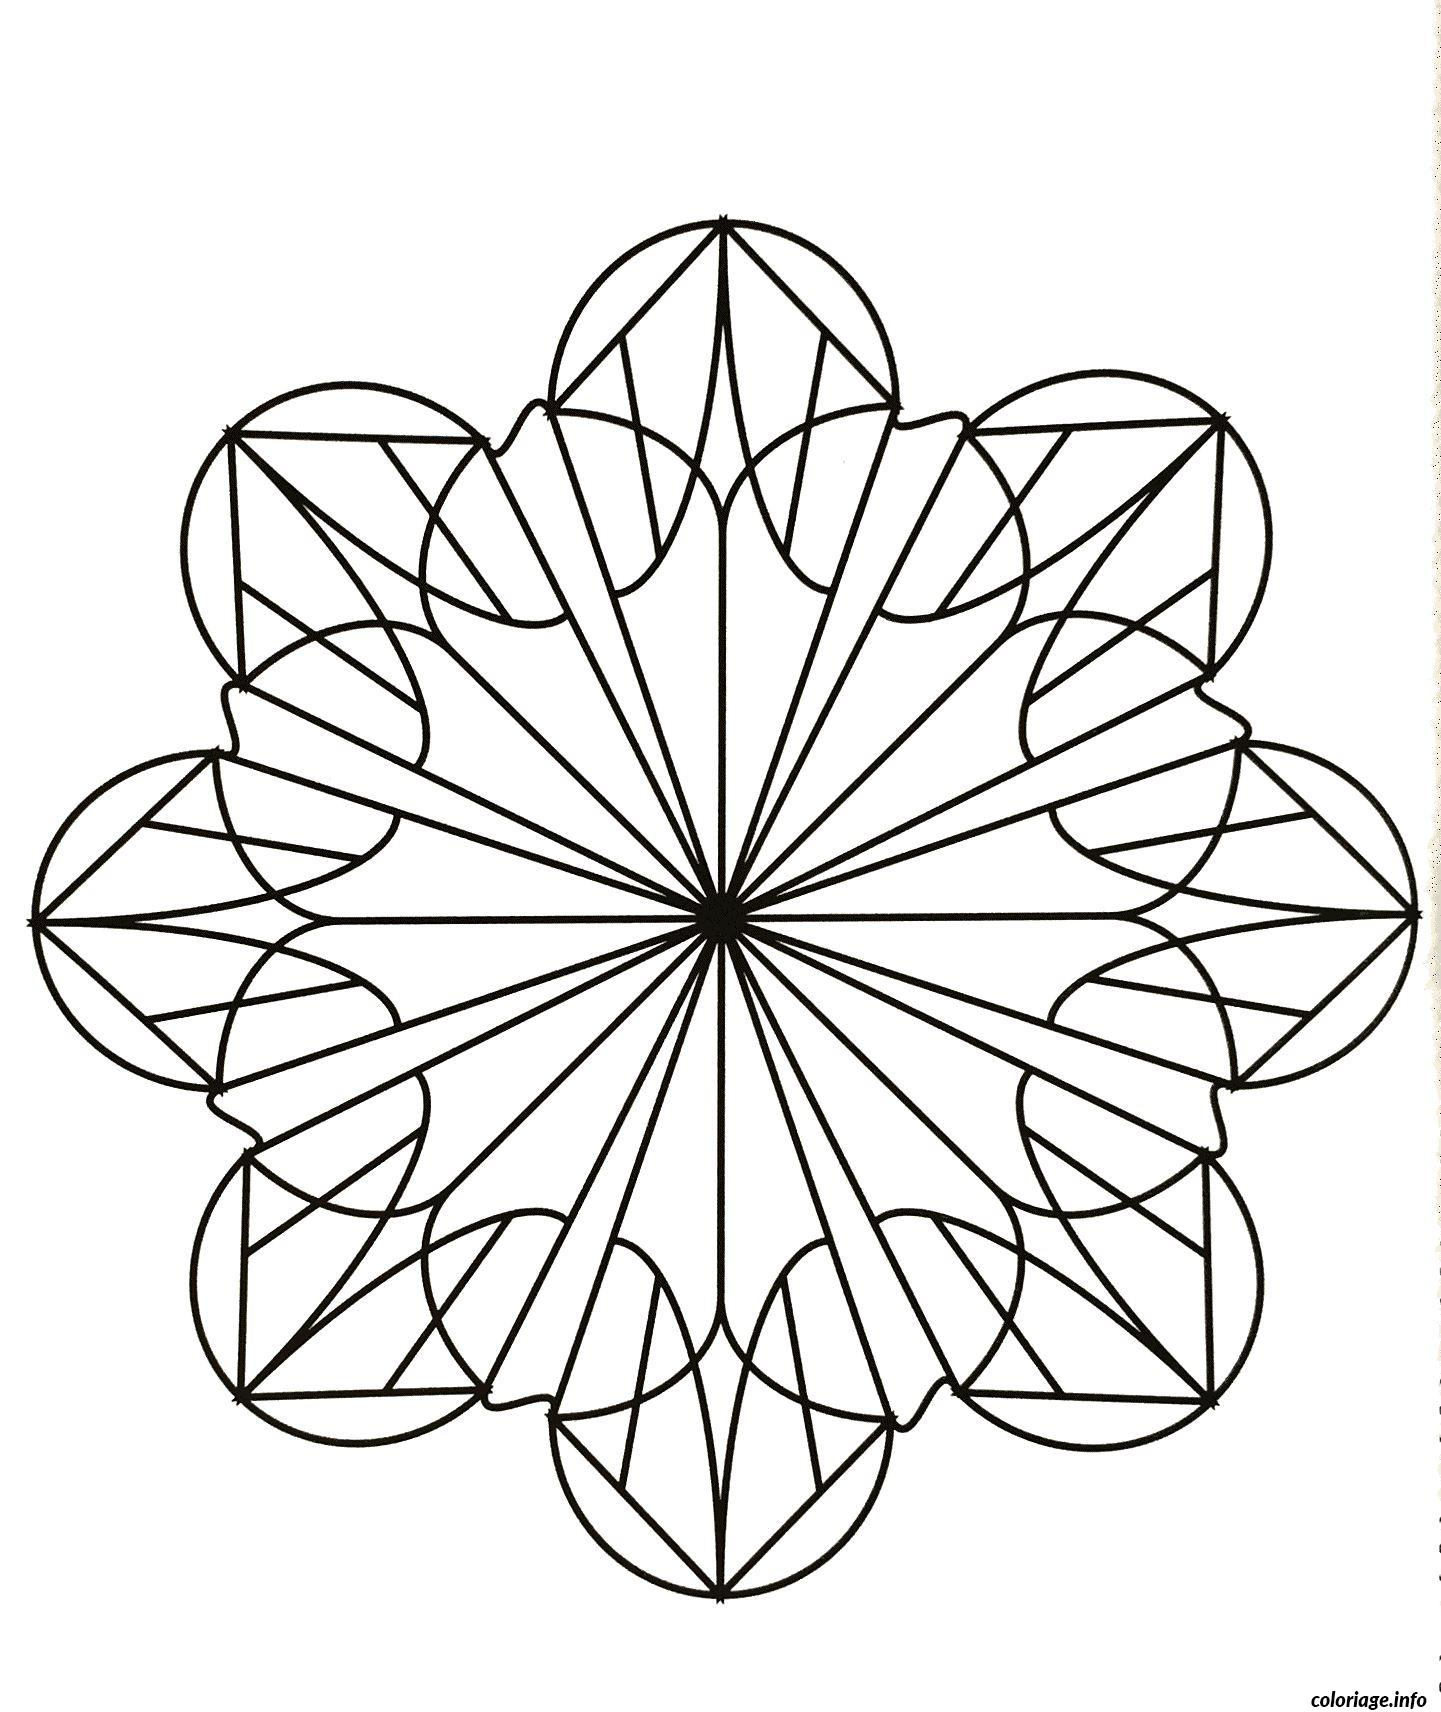 Coloriage Mandalas To Download For Free 19 Dessin à Imprimer